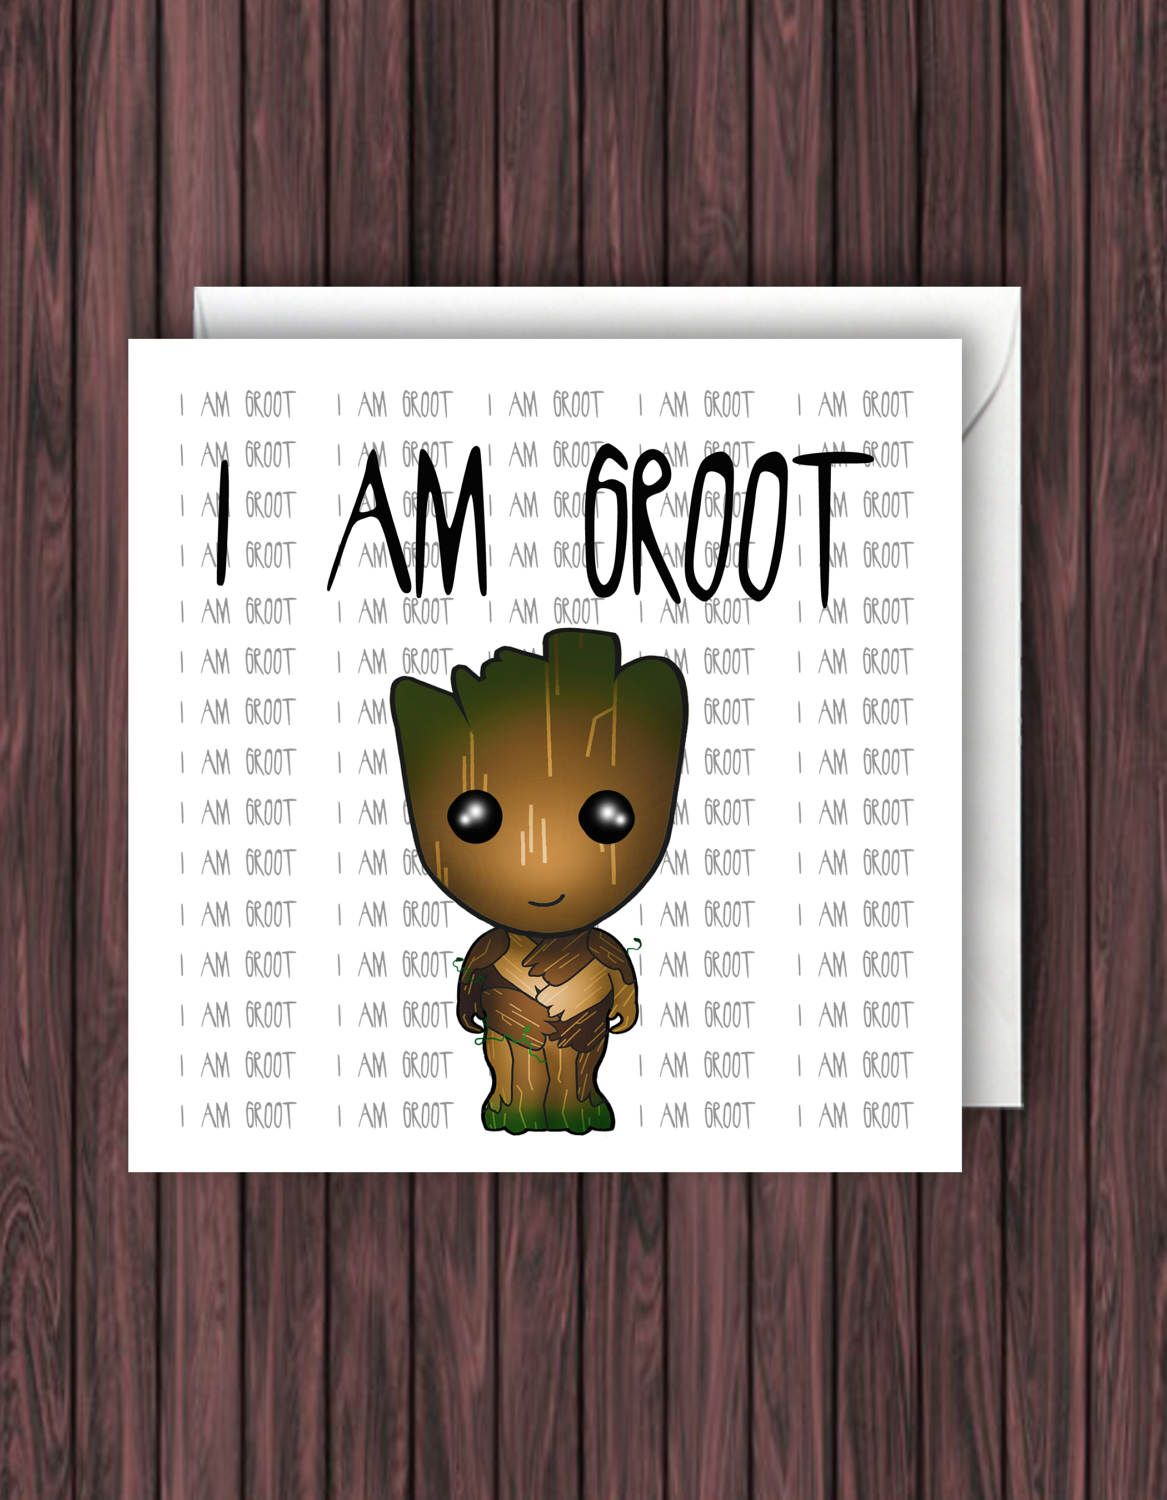 I am groot guardians of the galaxy birthday card marvel guardians of the galaxy birthday card marvel greetings card geek kristyandbryce Image collections